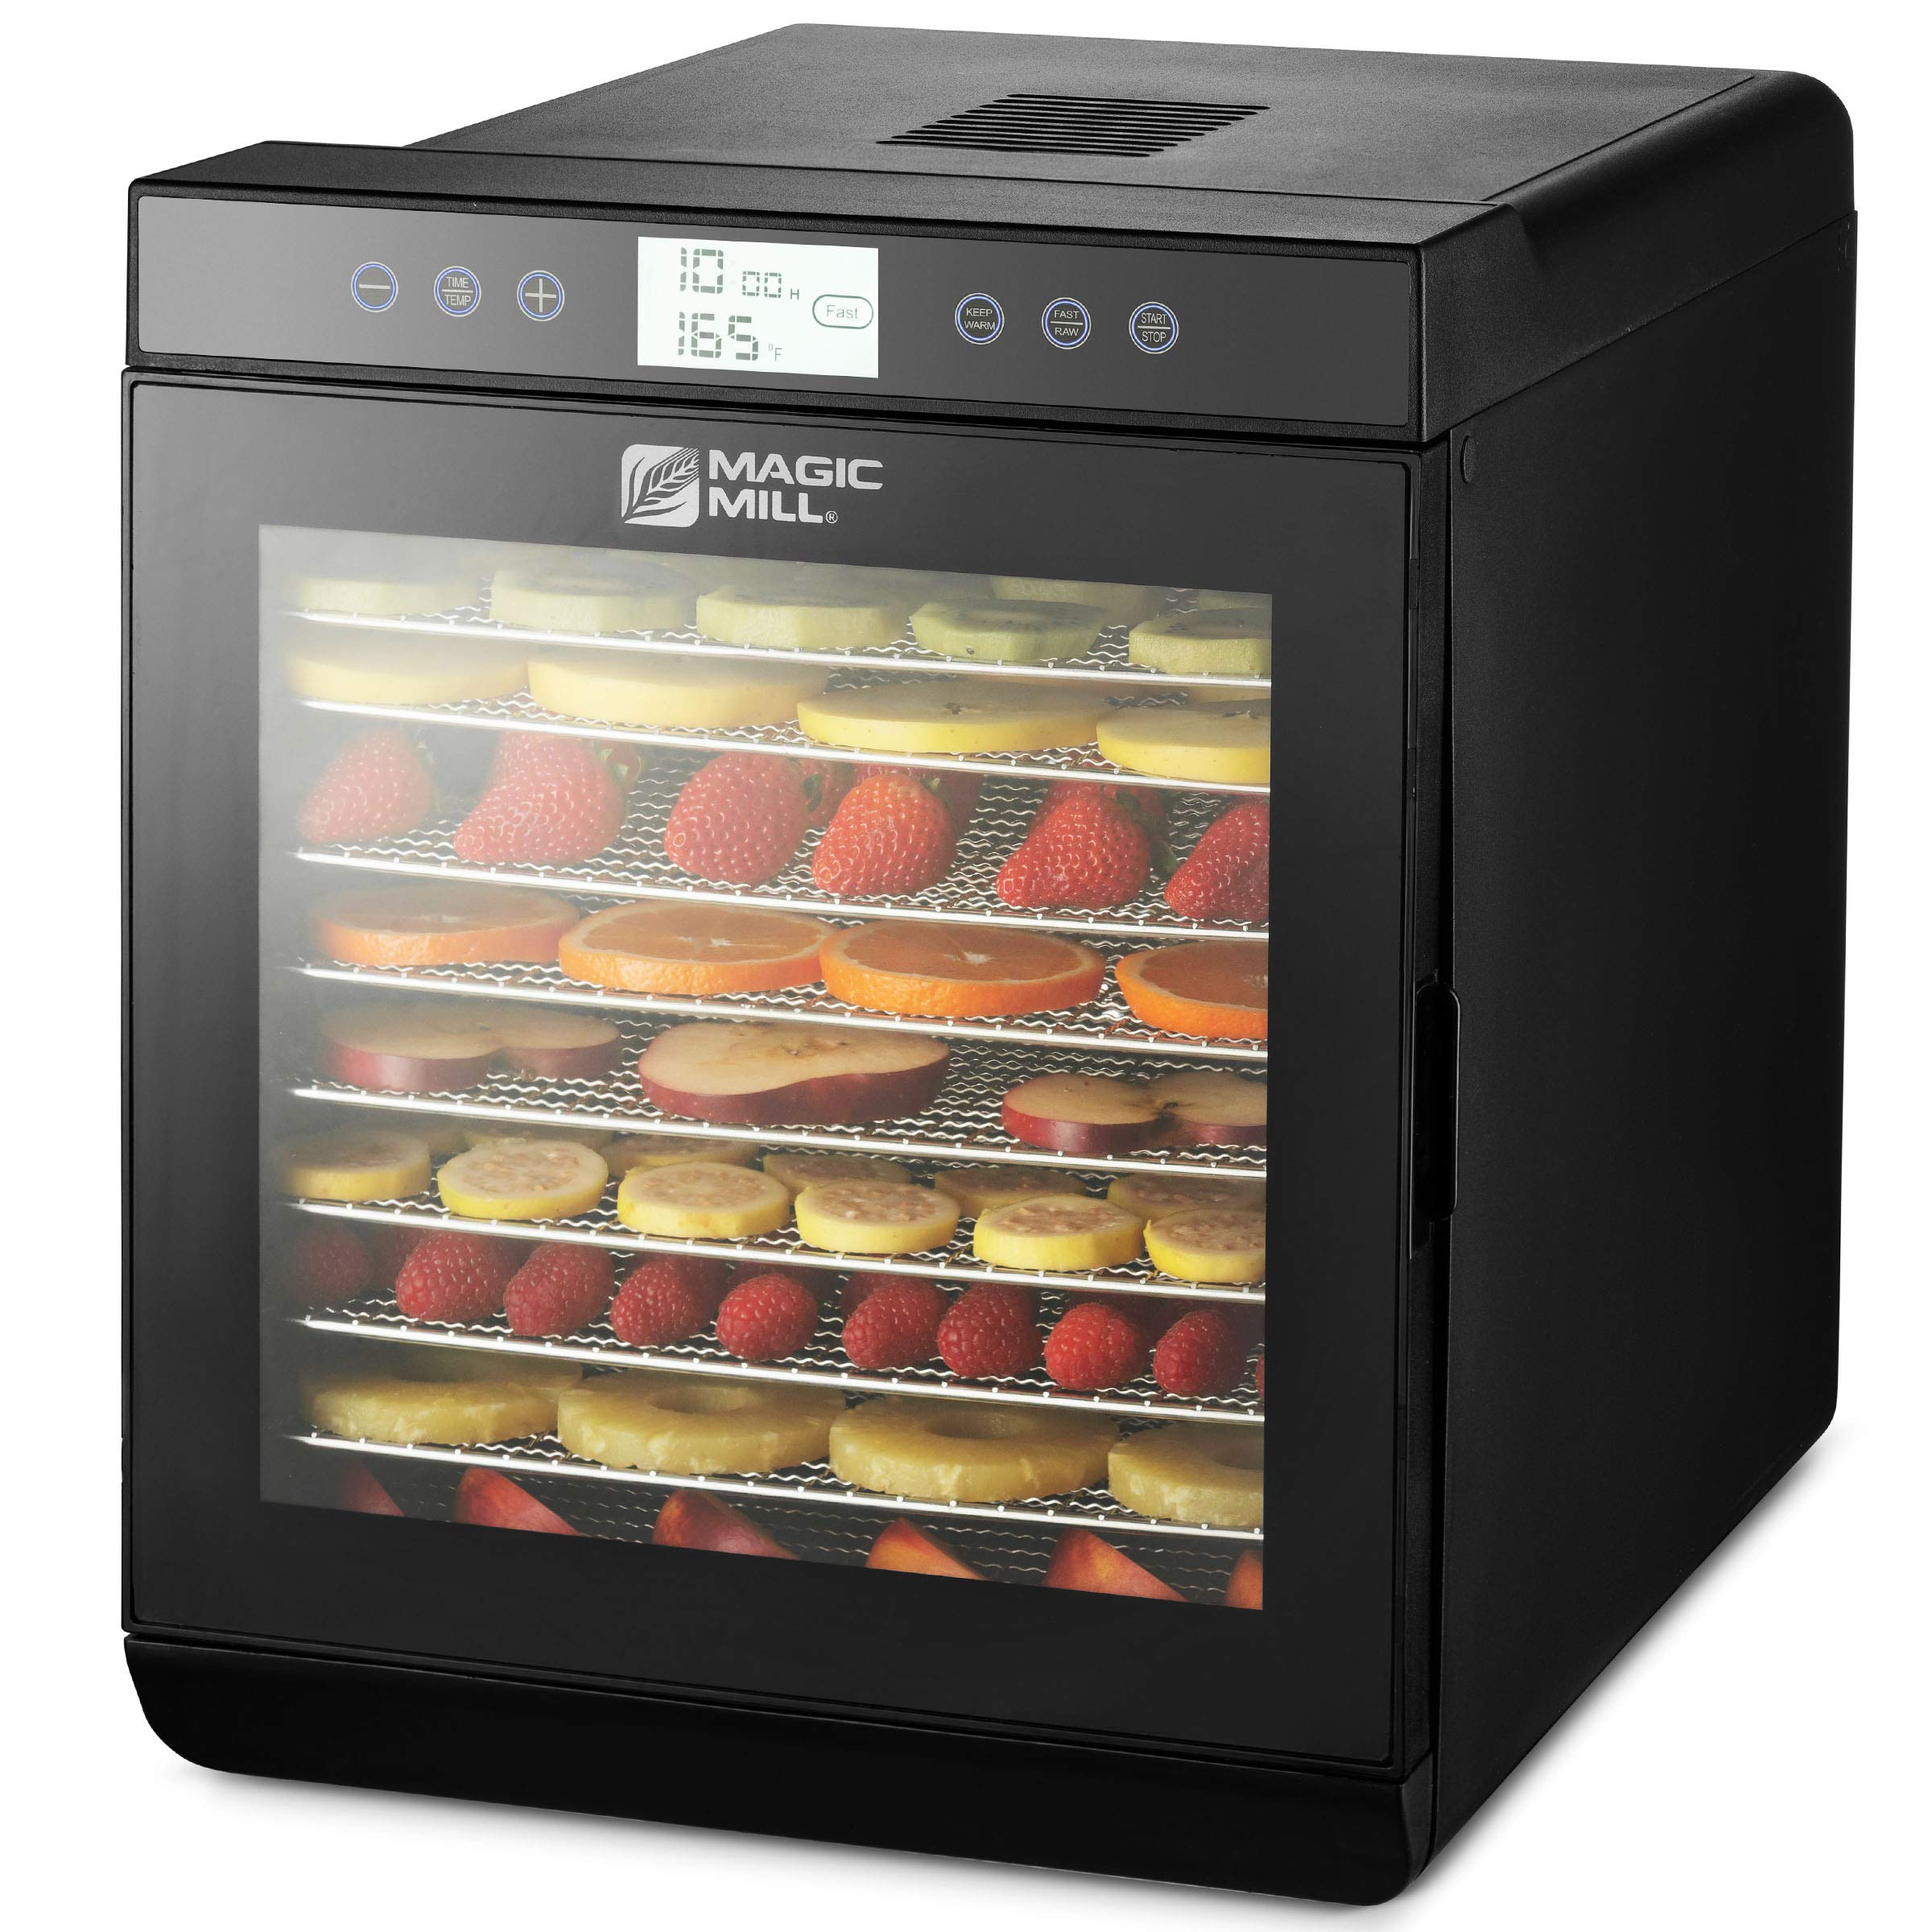 Magic Mill Food Dehydrator Machine - Easy Setup, Digital Adjustable Timer, Temperature Control | Keep Warm Function | Dryer for Jerky, Herb, Meat, Beef, Fruit and To Dry Vegetables | Over Heat Protection | 10 Stainless Steel trays